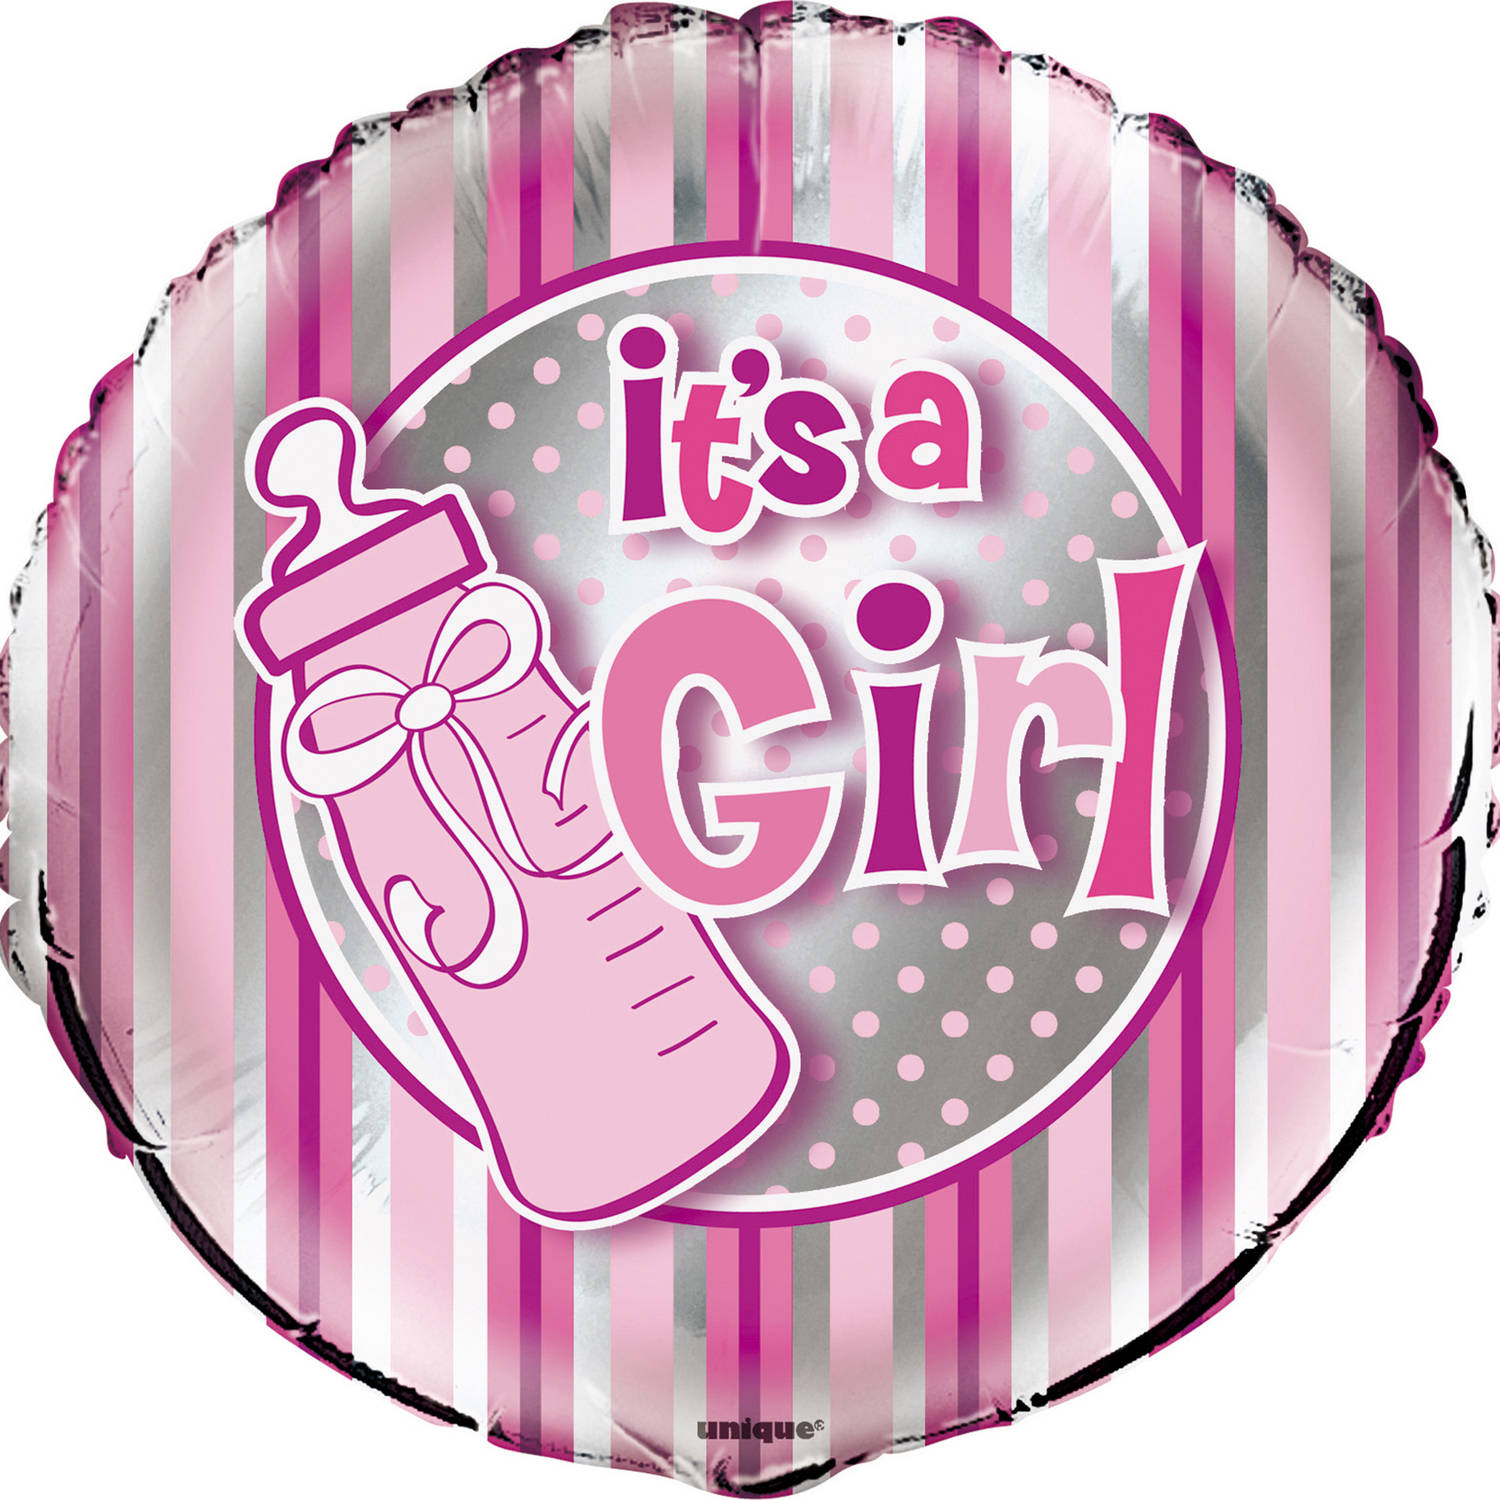 Foil It's a Girl Baby Shower Balloon, 18 in, Pink, 1ct